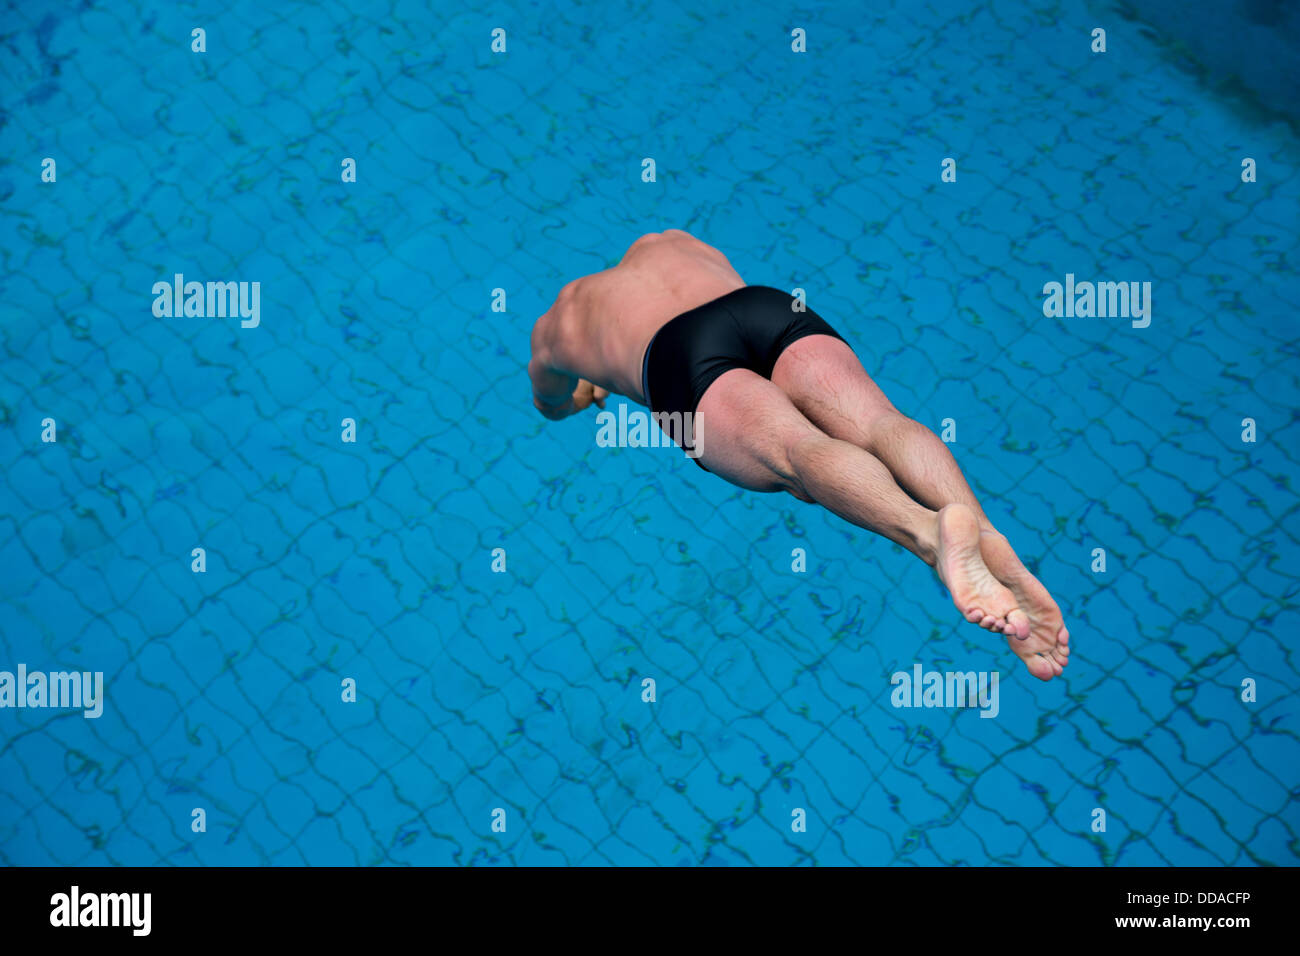 Public Swimming Pools With Diving Boards man jumping from diving board at public swimming pool stock photo